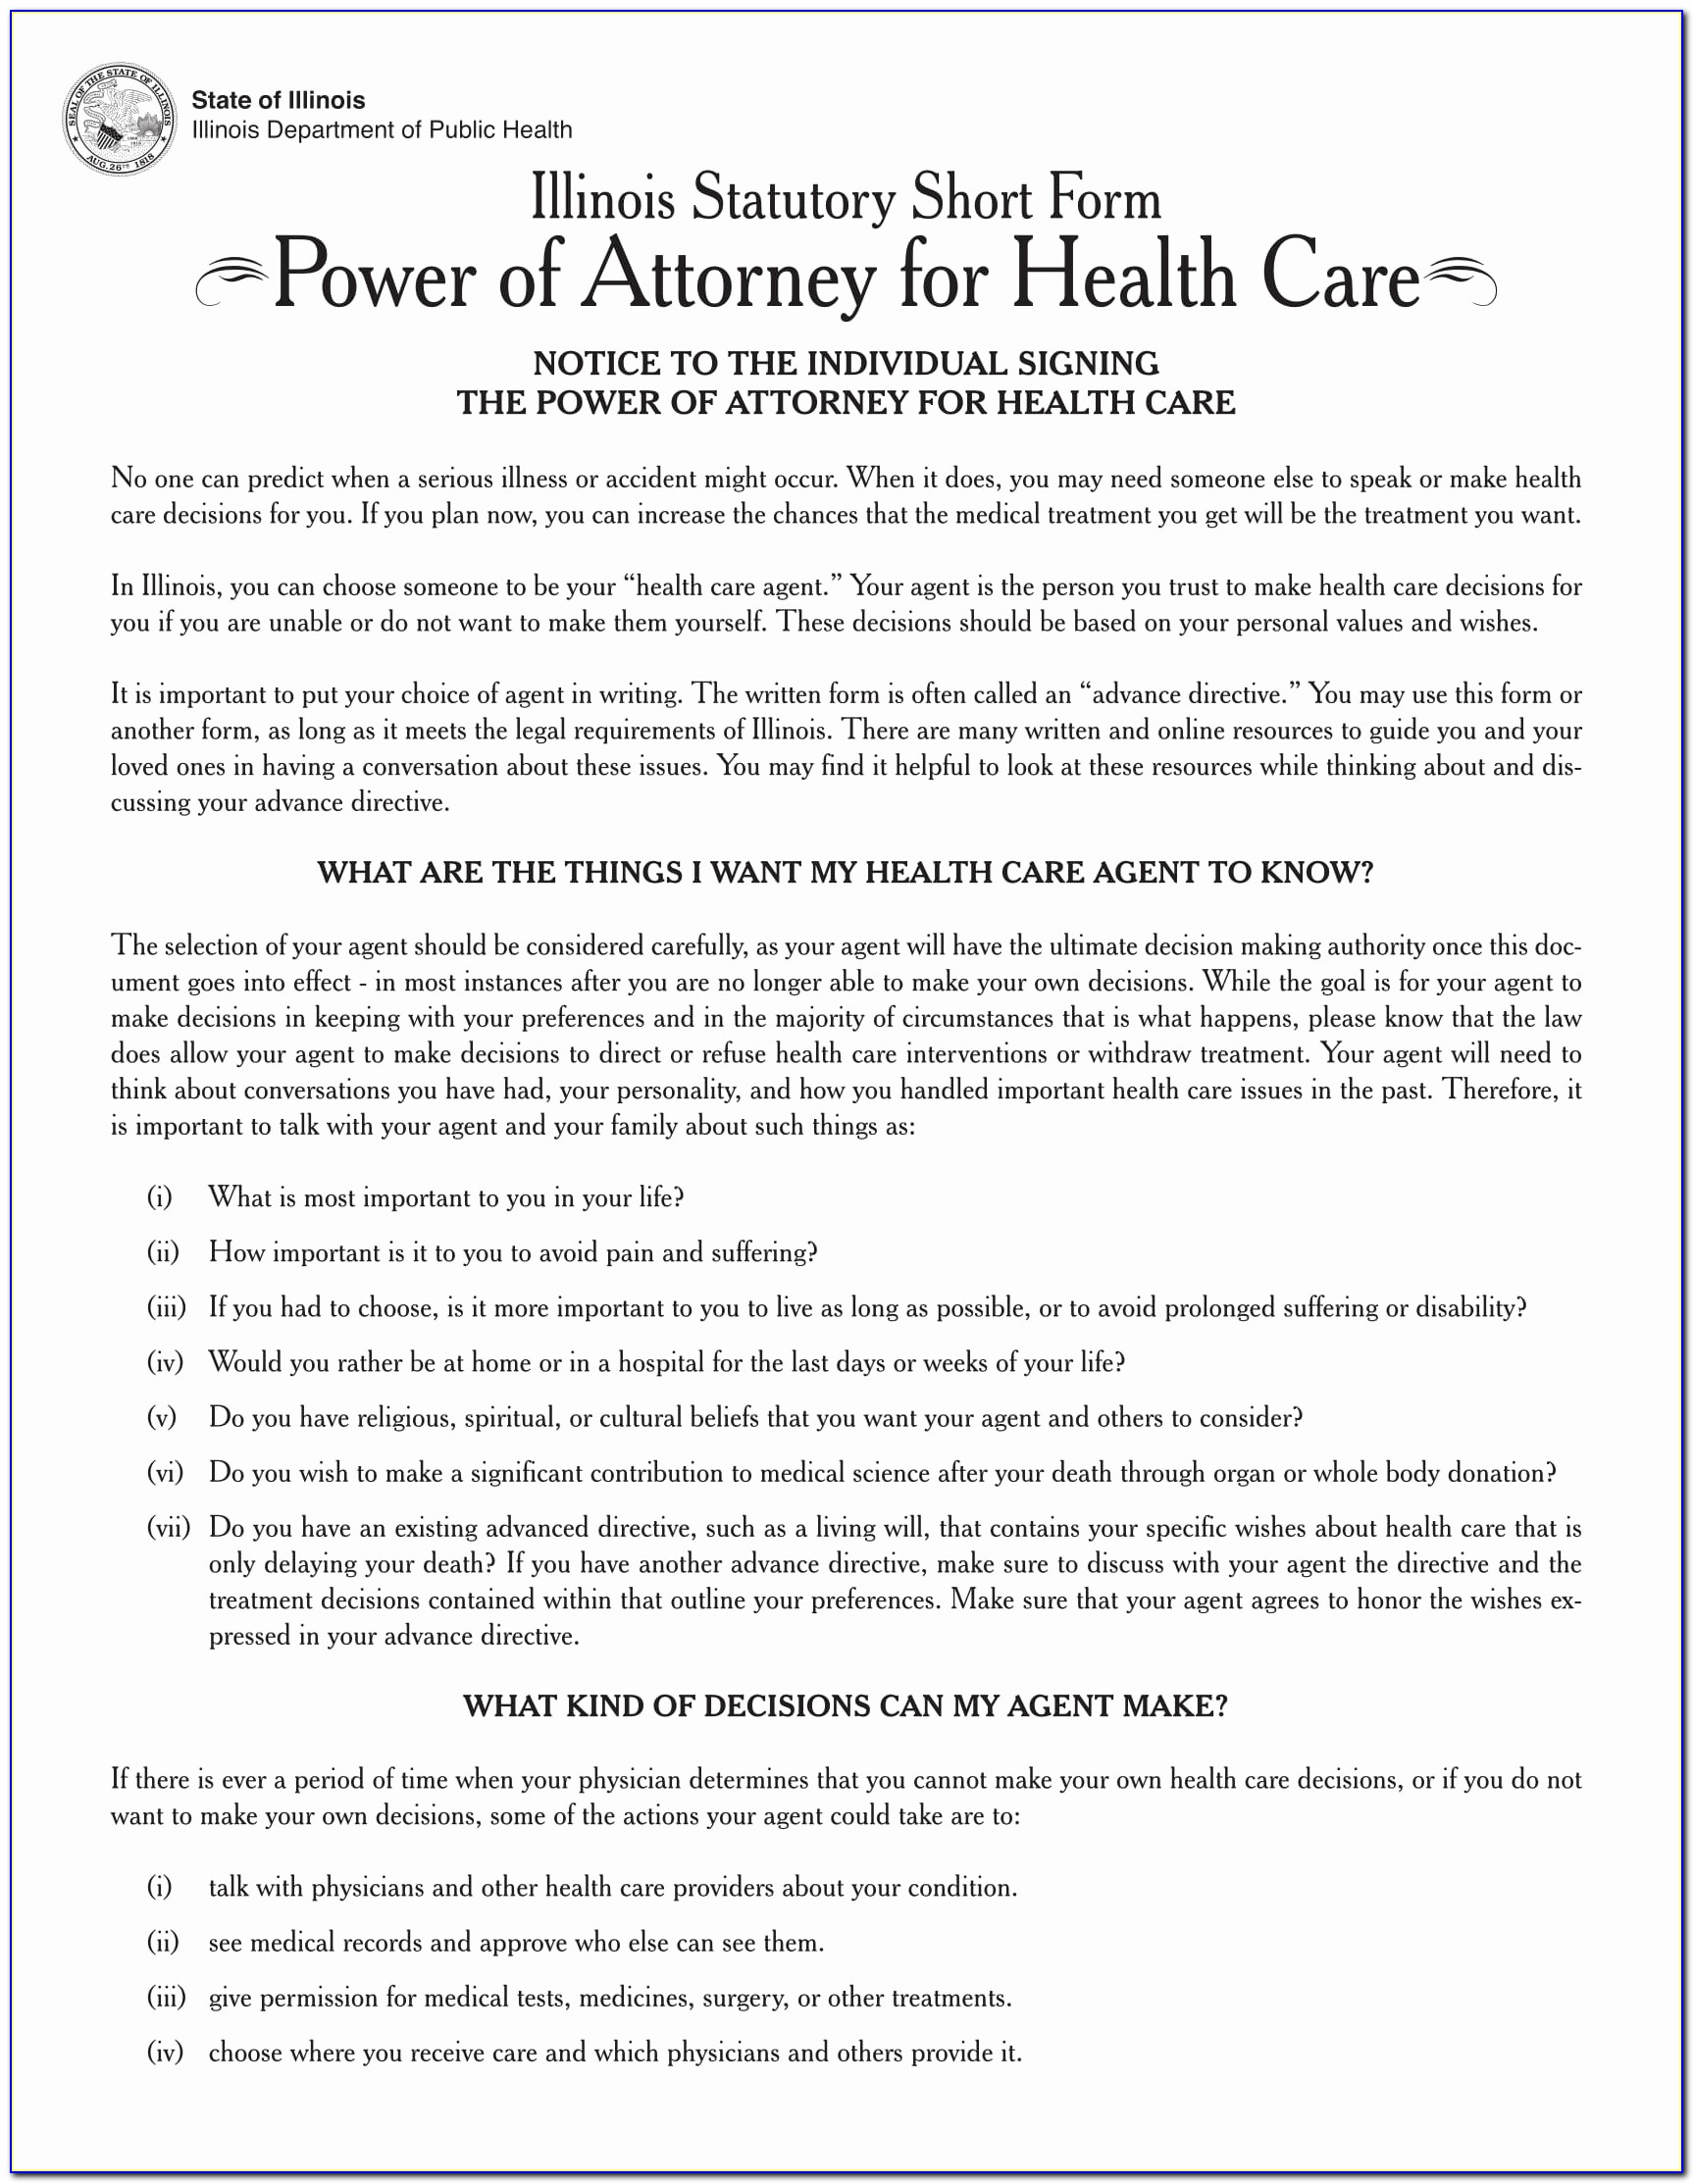 Georgia Health Care Power Of Attorney Form Elegant Ga Advance Directive For Health Care Form Fresh My Child With A